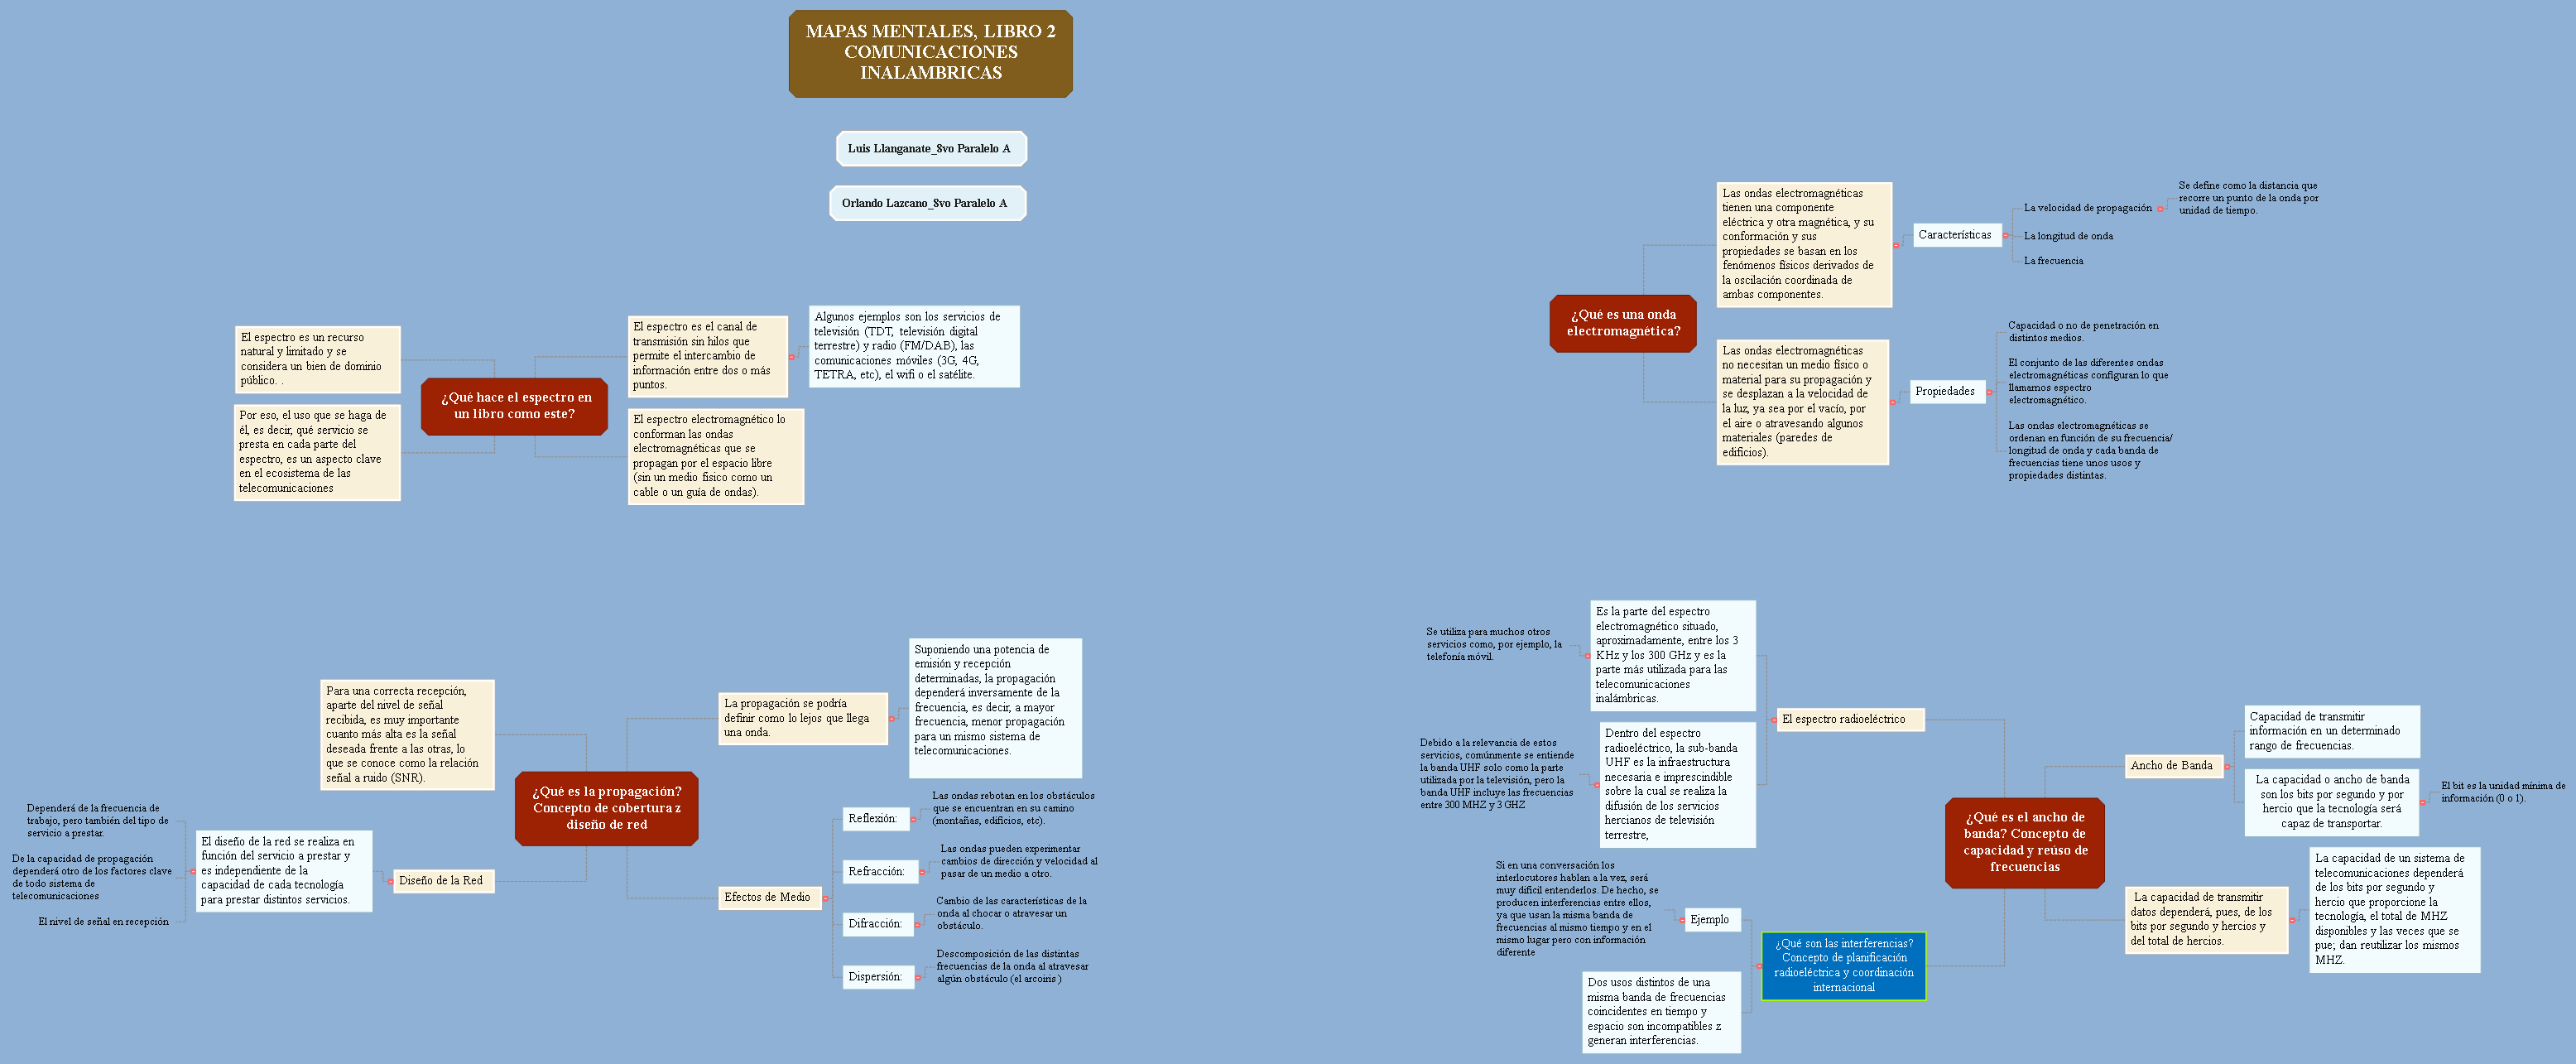 Mapas Mentales_LIBRO2 Mind Map